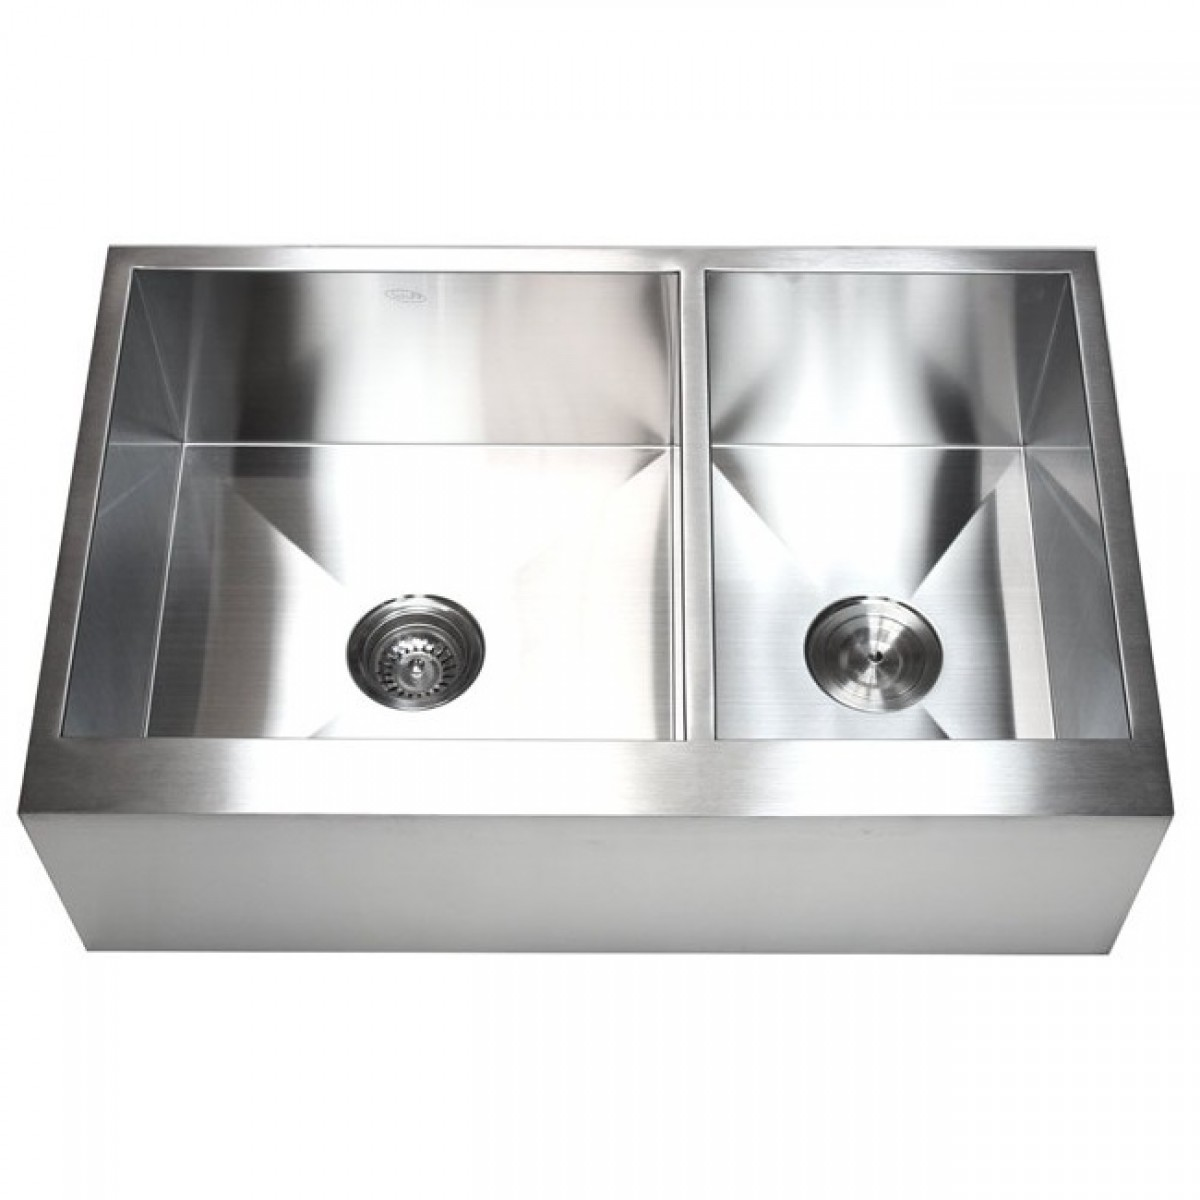 33 Inch Stainless Steel 60/40 Double Bowl Flat Front Farm Apron Kitchen Sink